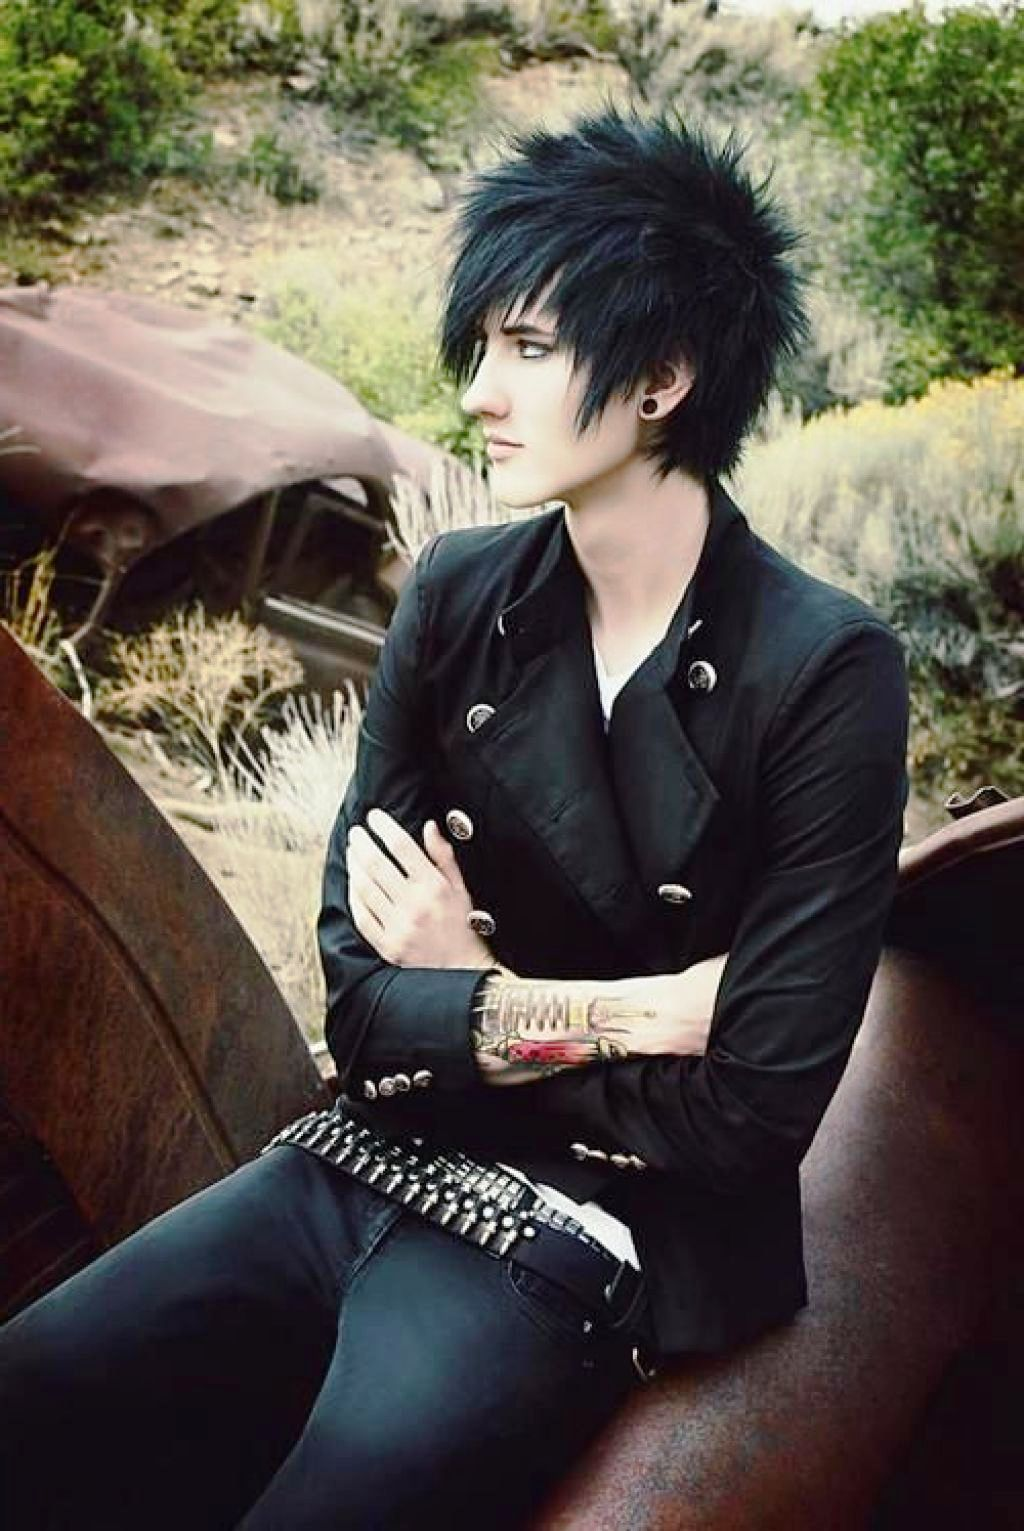 25 punk hairstyle ideas for men to try emo hairstyles